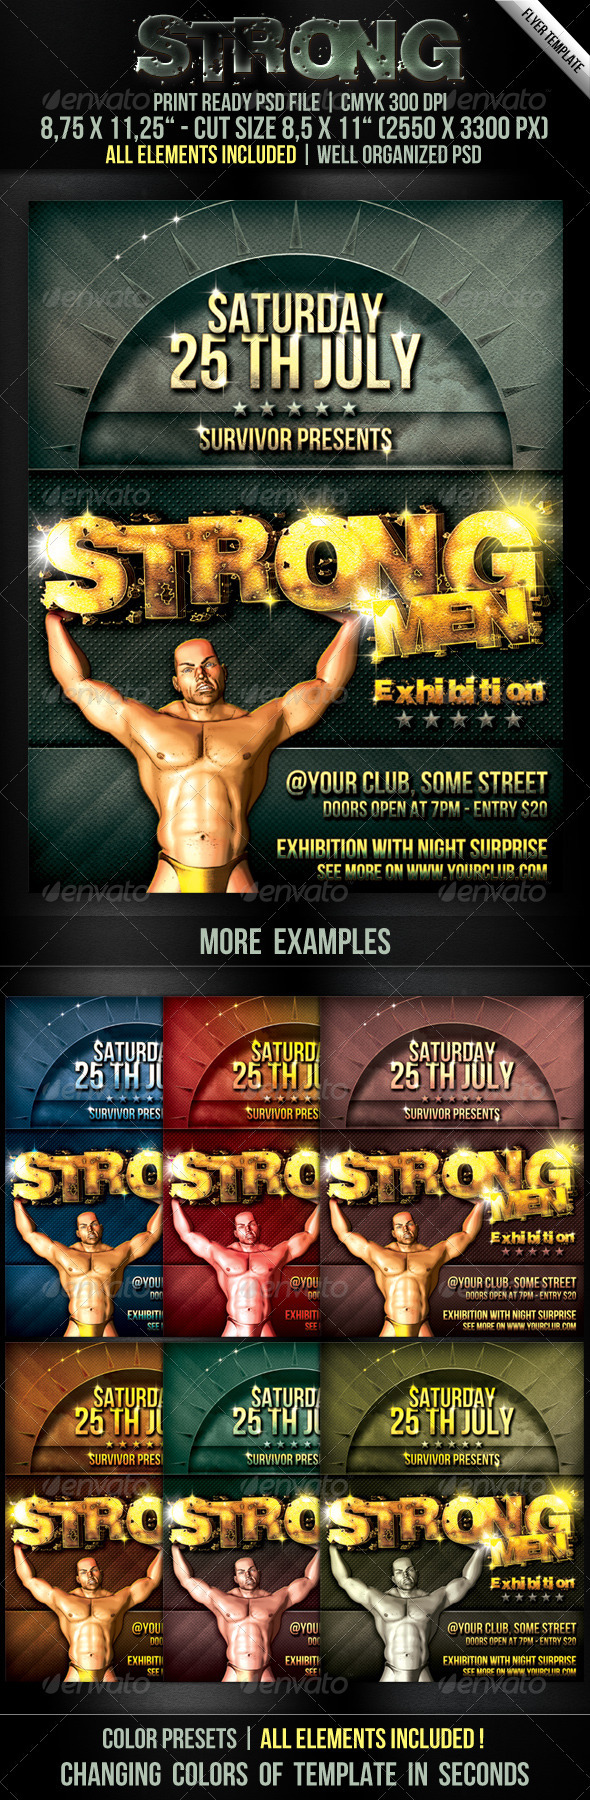 Strong Men Flyer Template - Clubs & Parties Events